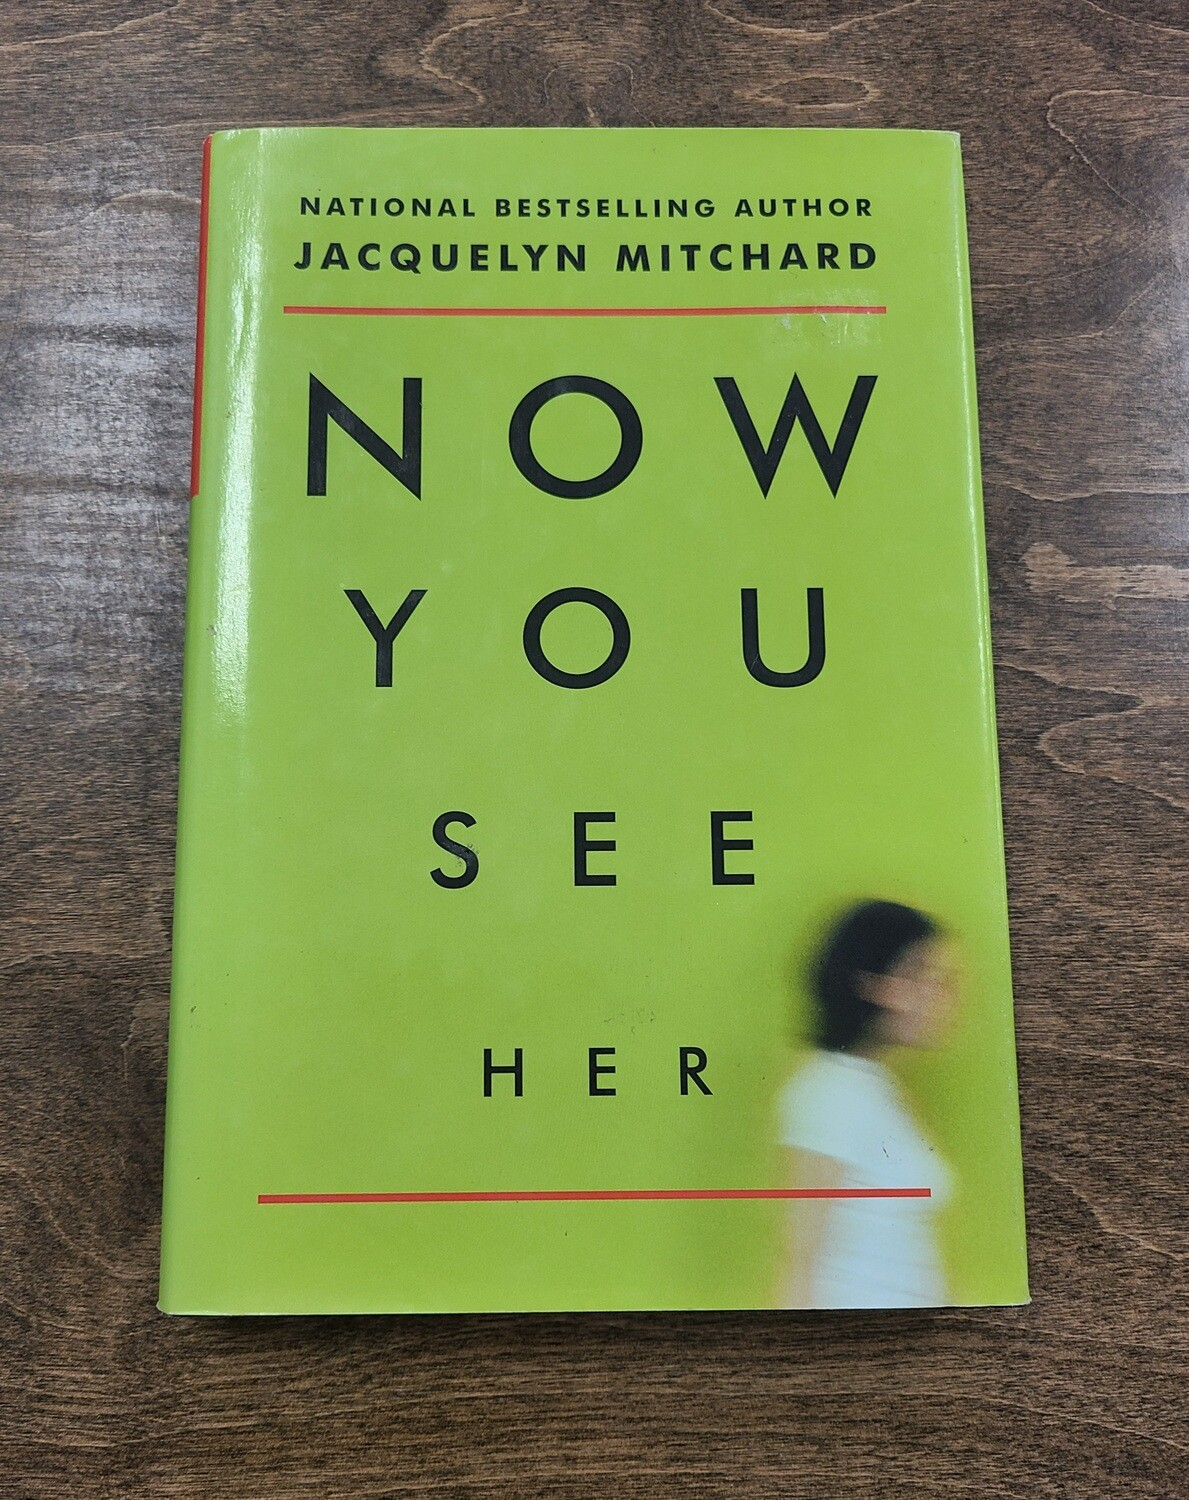 Now You See Her by Jacquelyn Mitchard